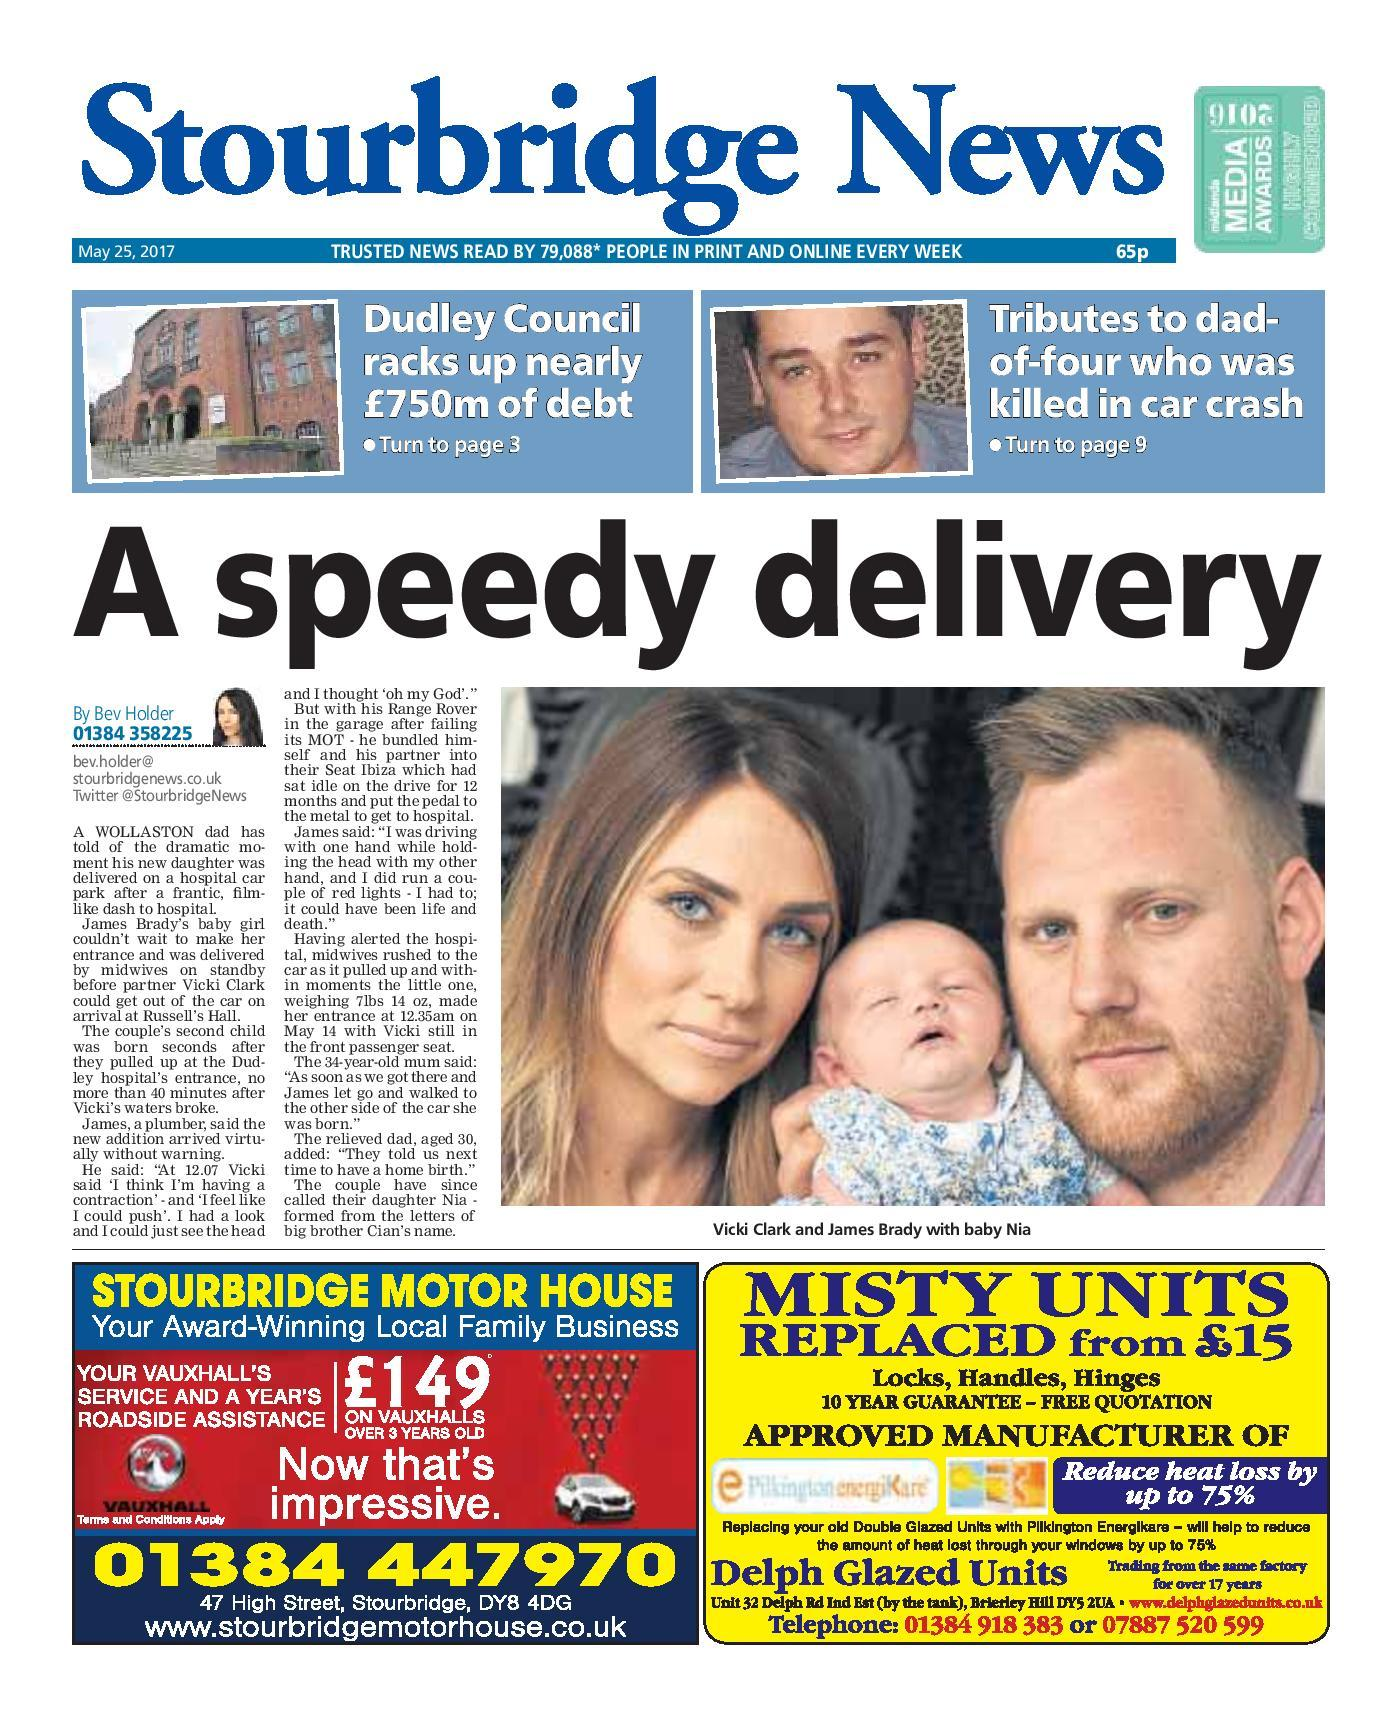 Just one of the front page stories which made the Stourbridge News one of Britain's best weekly newspapers in 2017